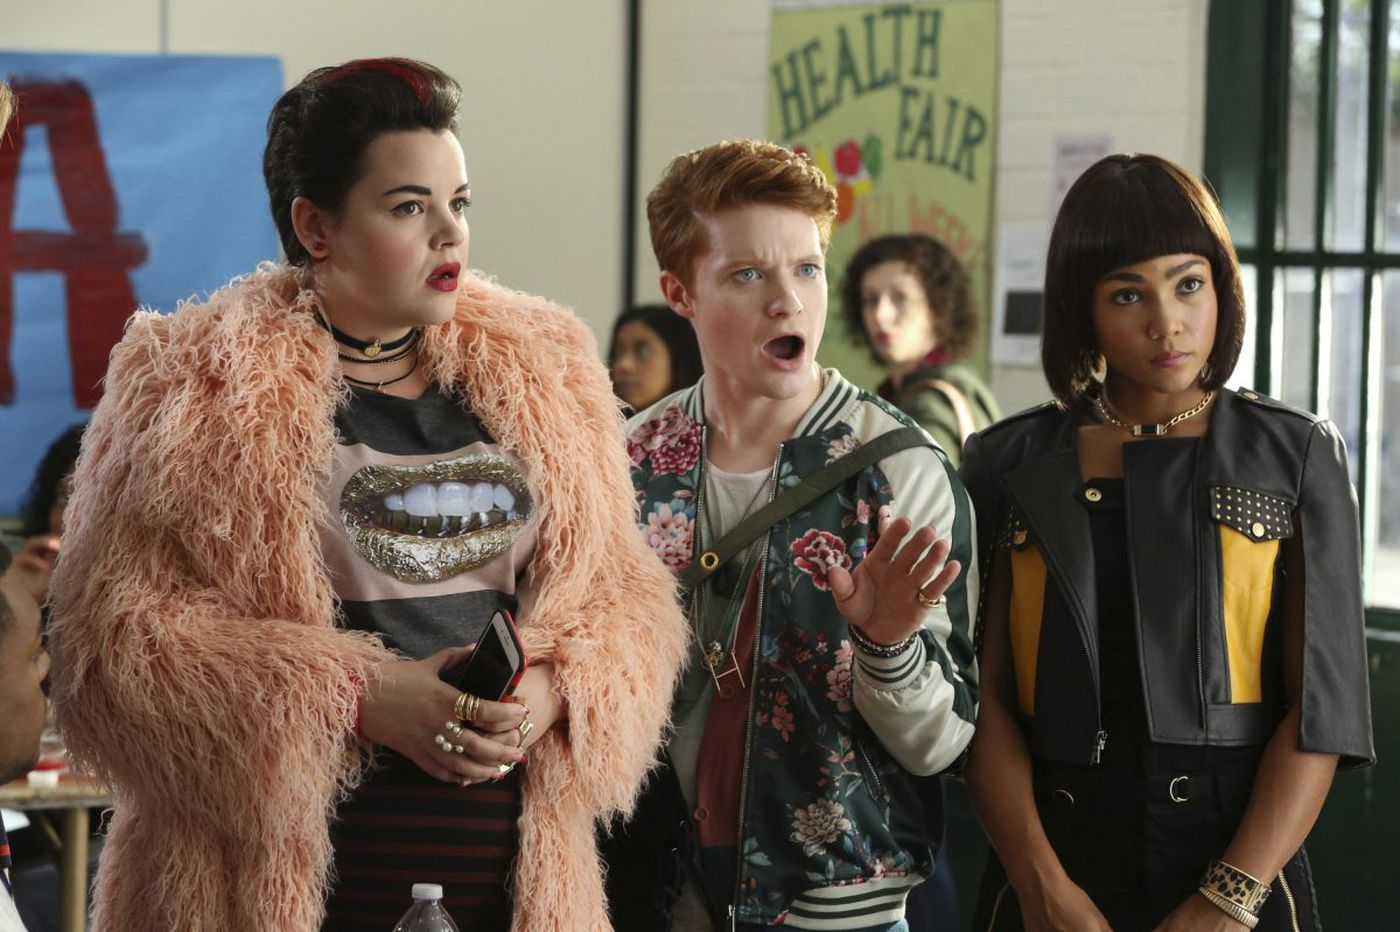 'Heathers' reboot starring Philly-area actress put off after Florida school shootings